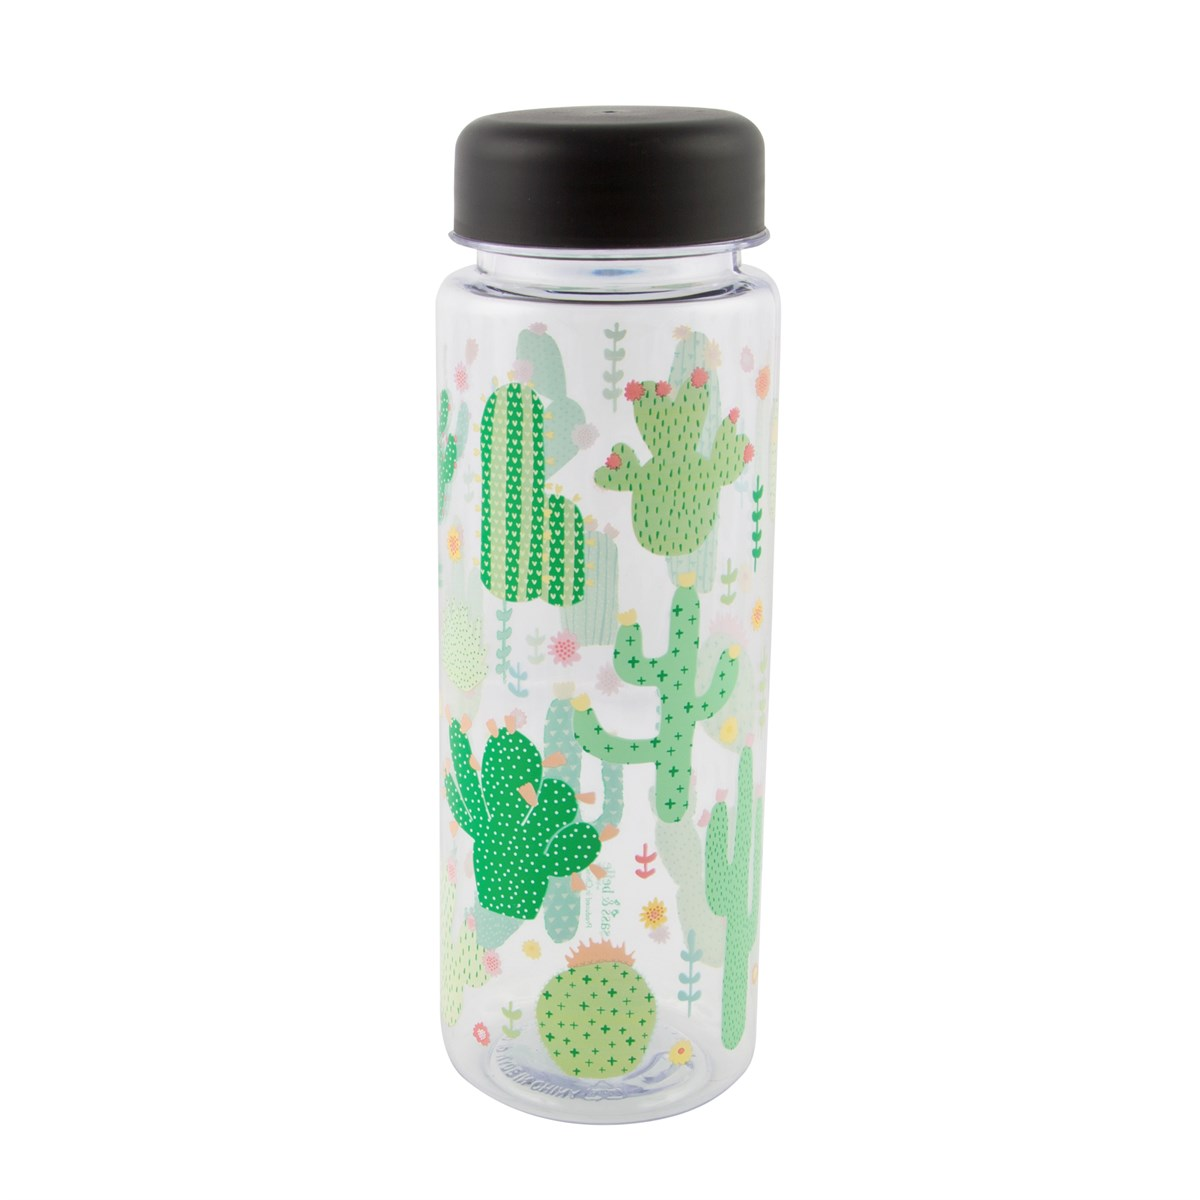 Cactus: how to water